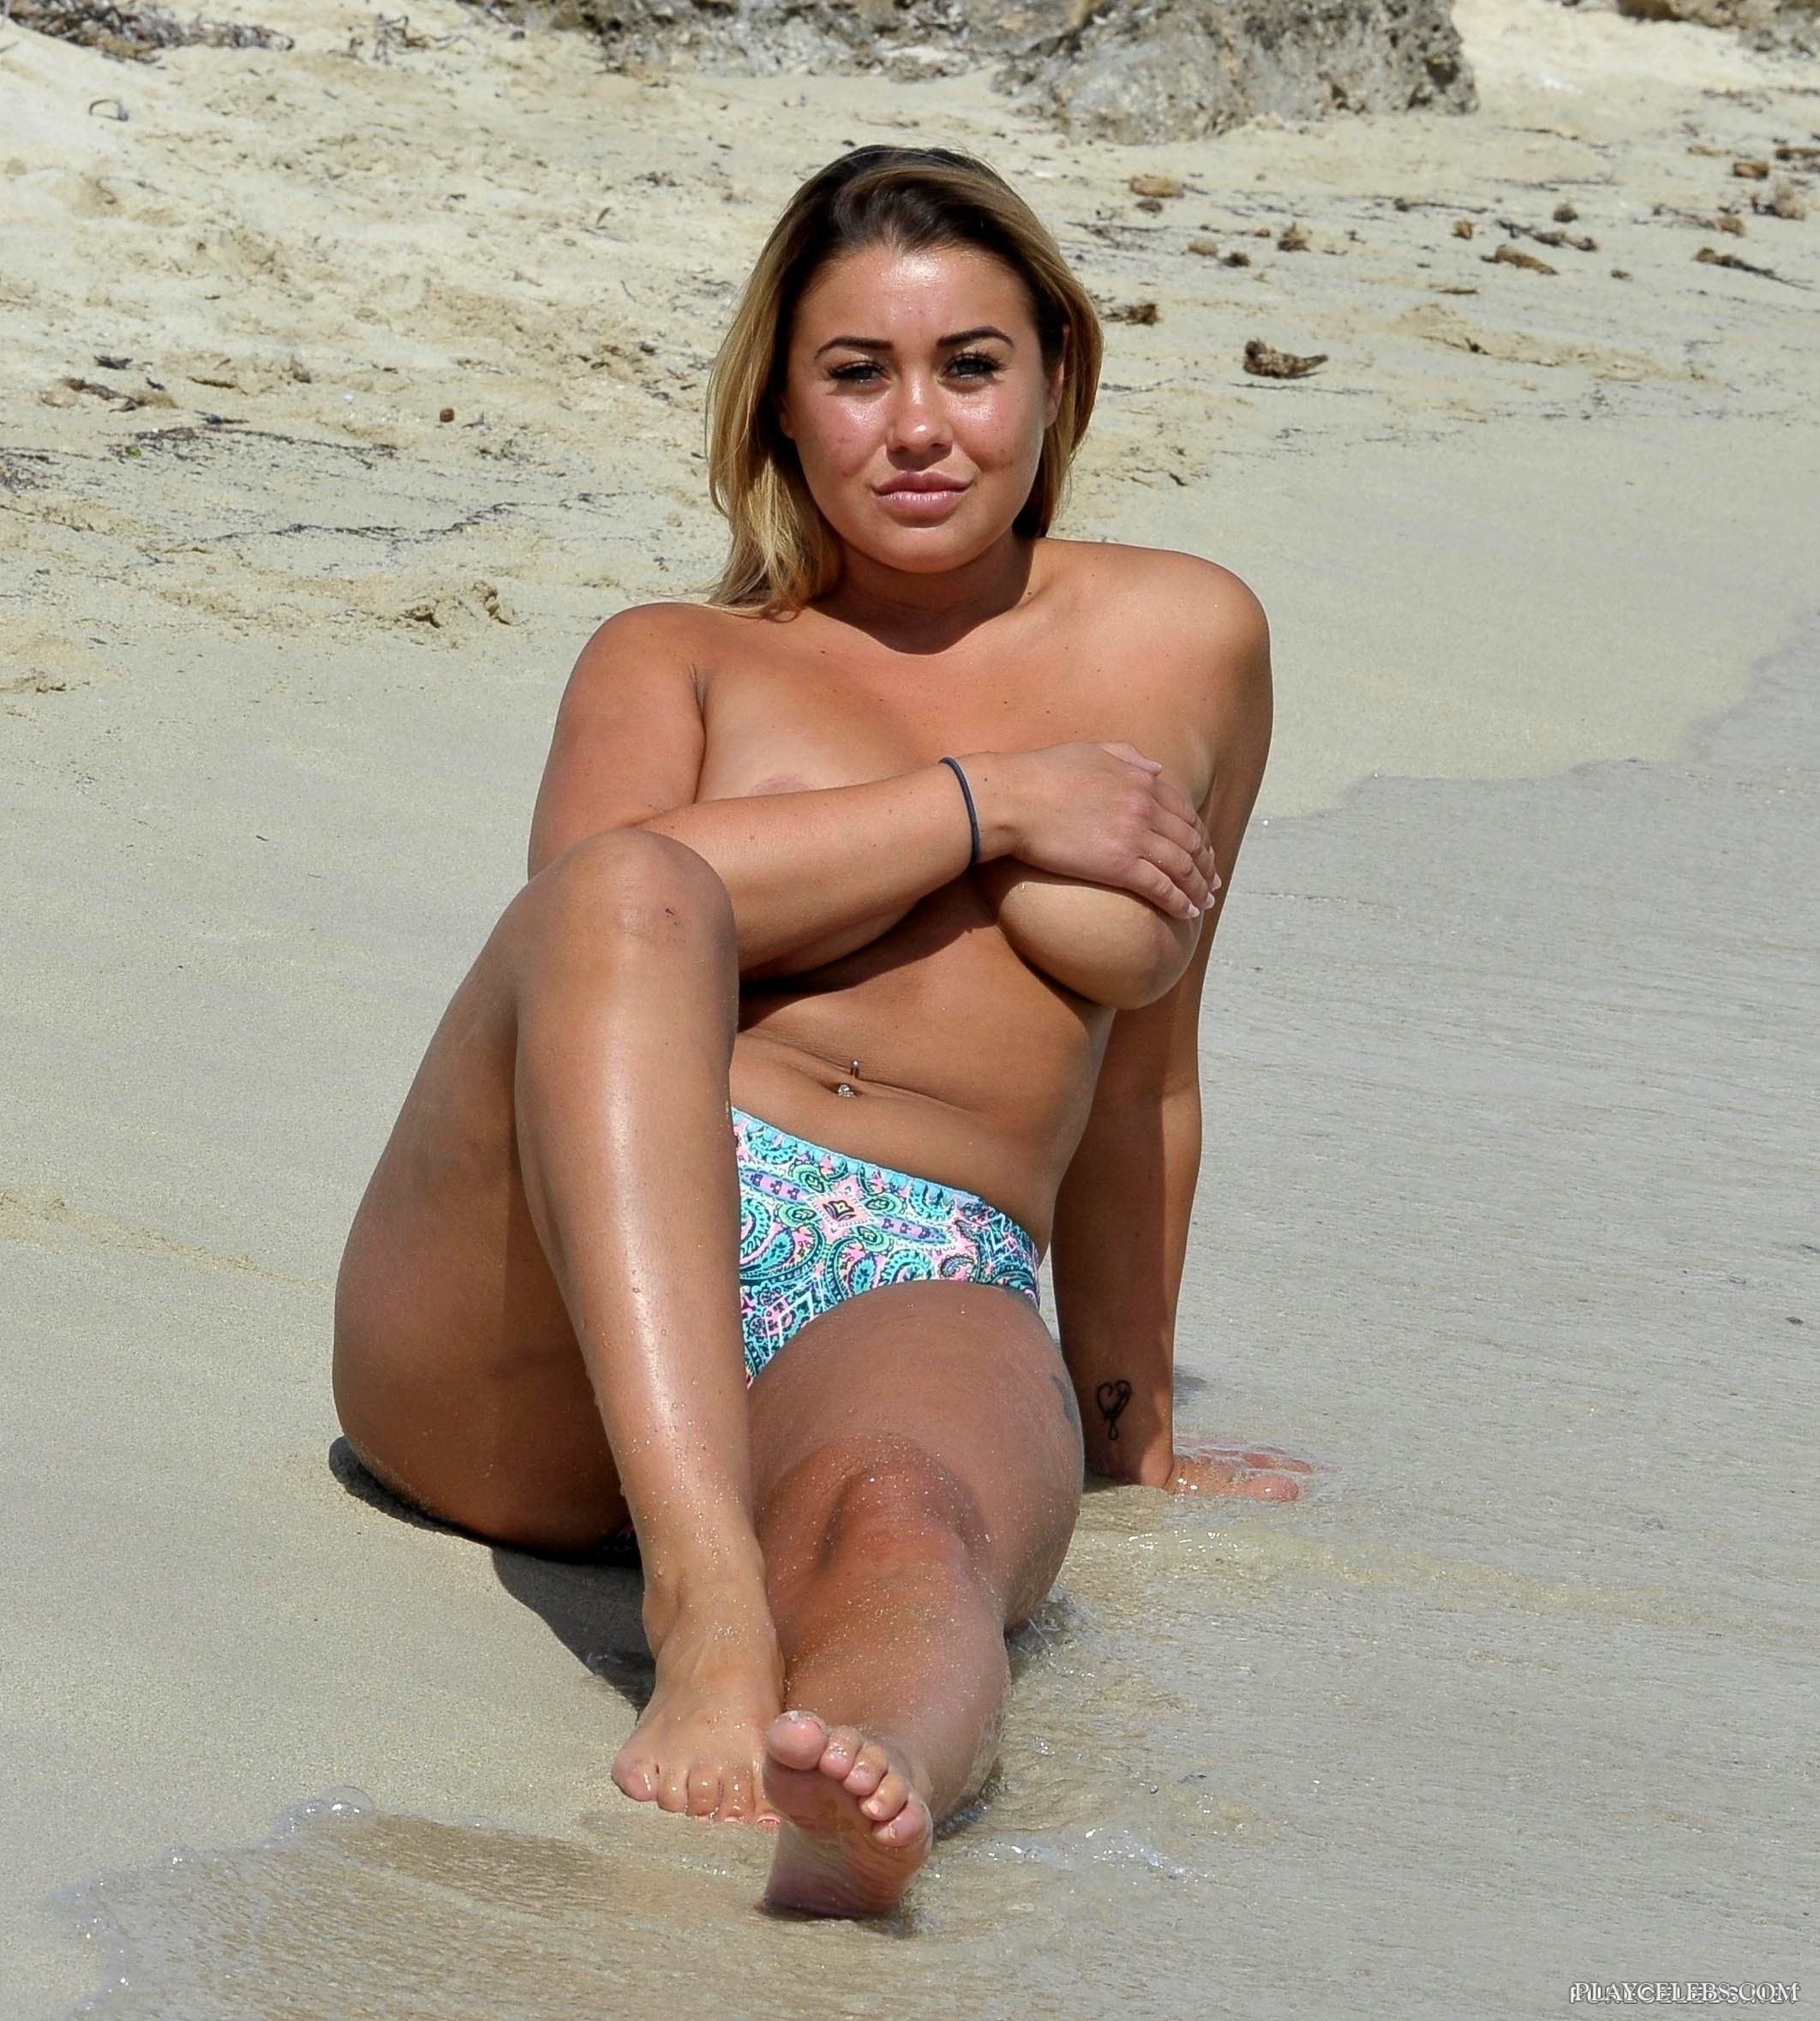 Ellie Young Topless And Covering Her Big Boobs